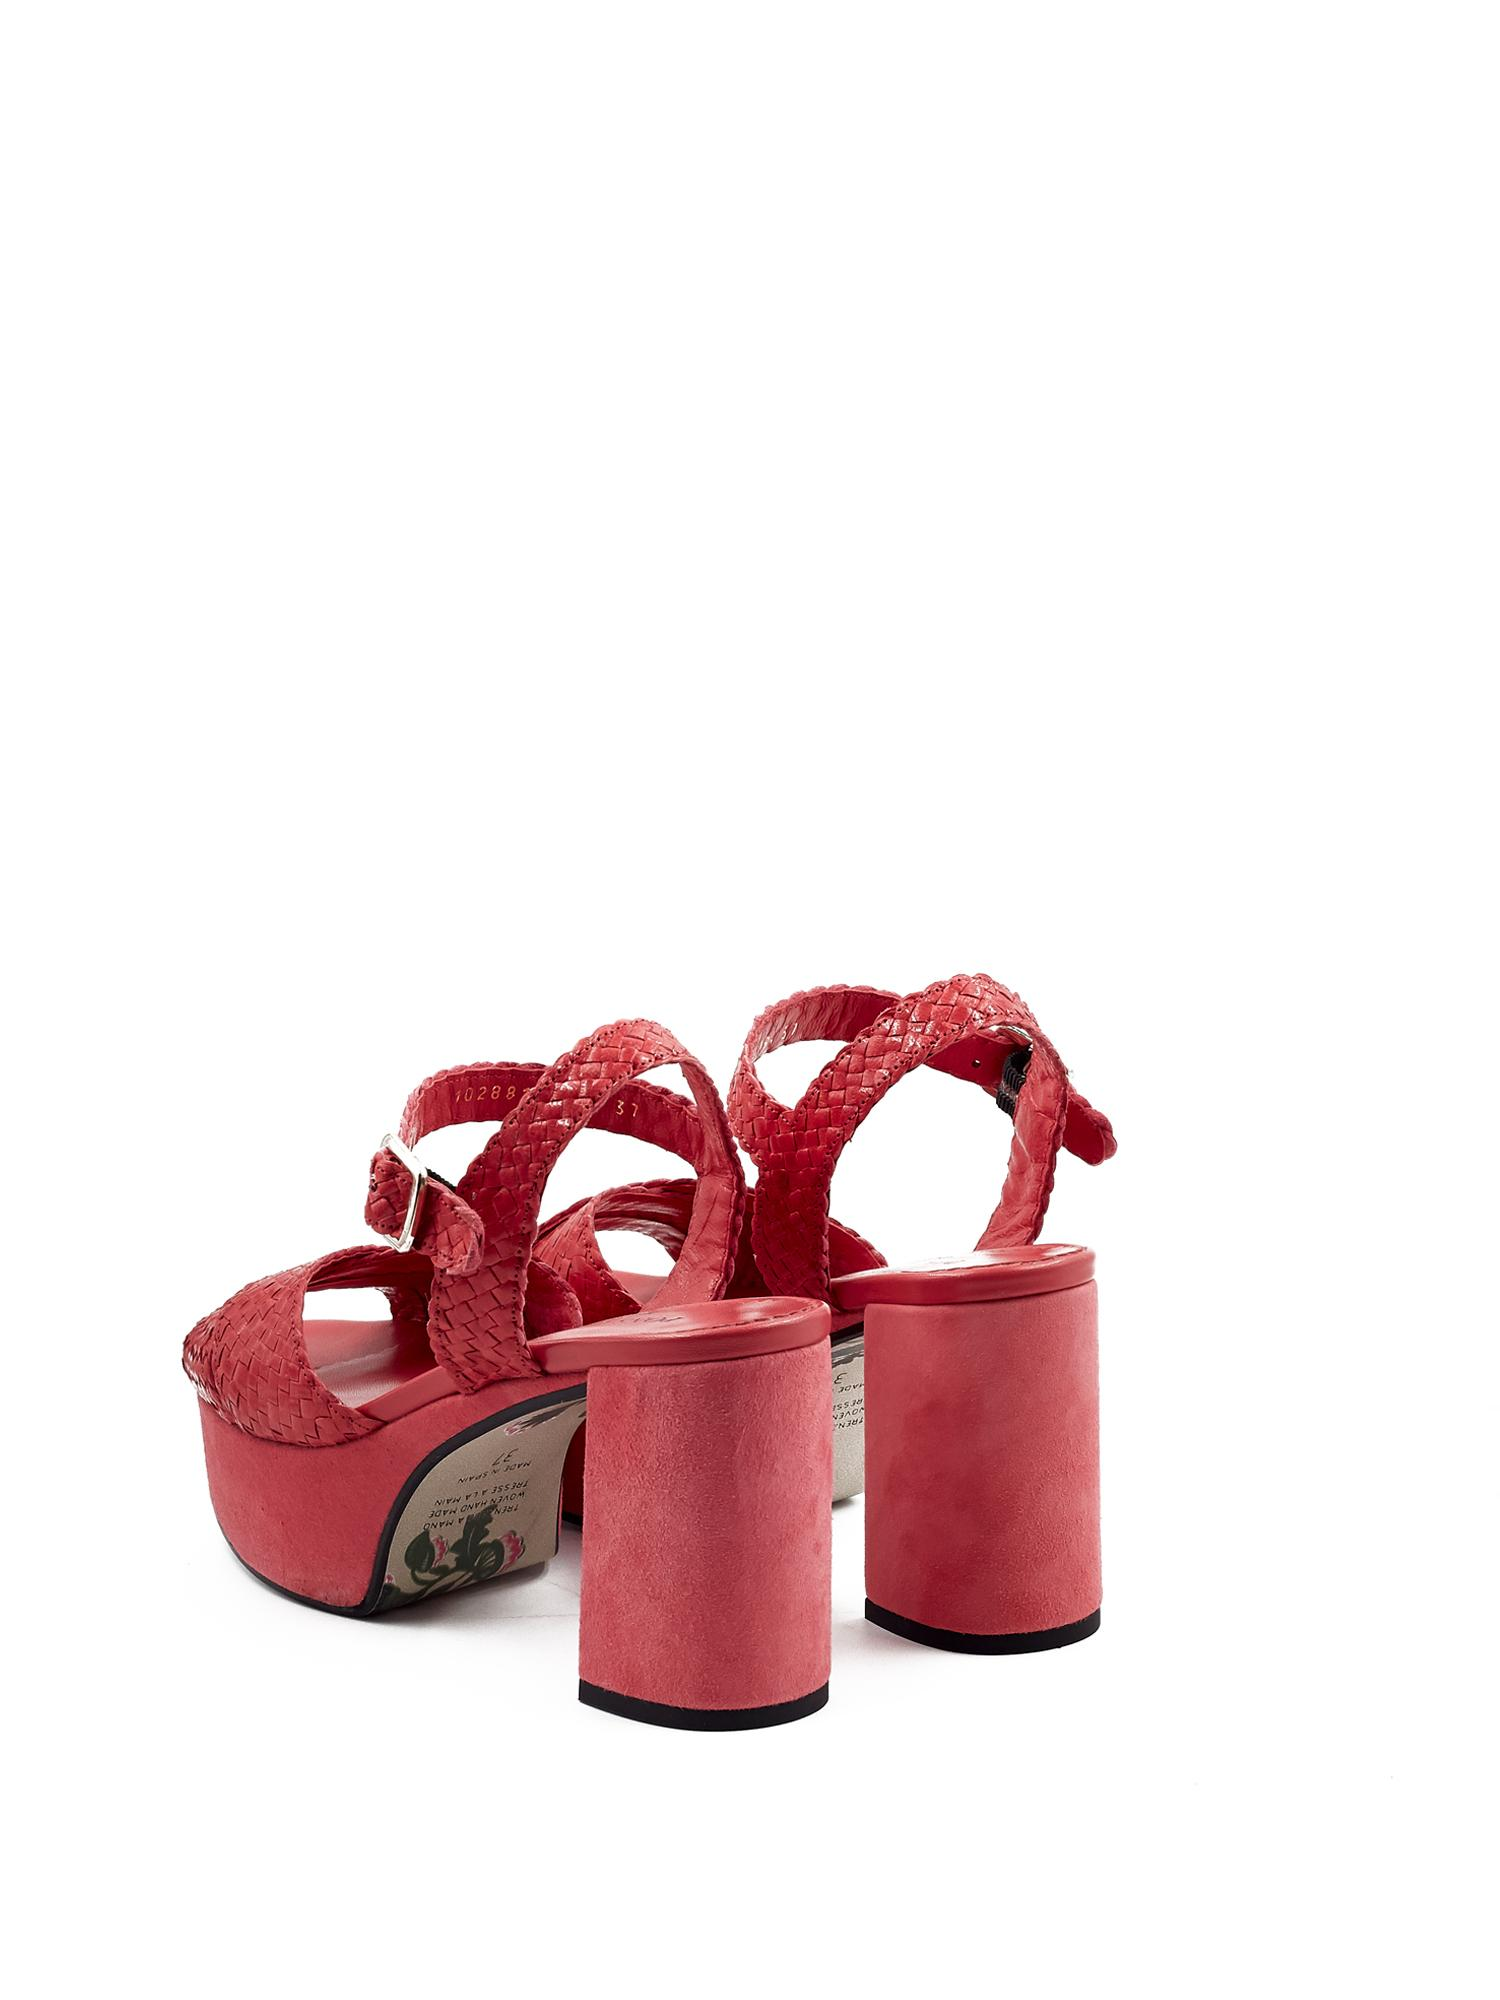 LIDIA STRAWBERRY HEEL SANDAL